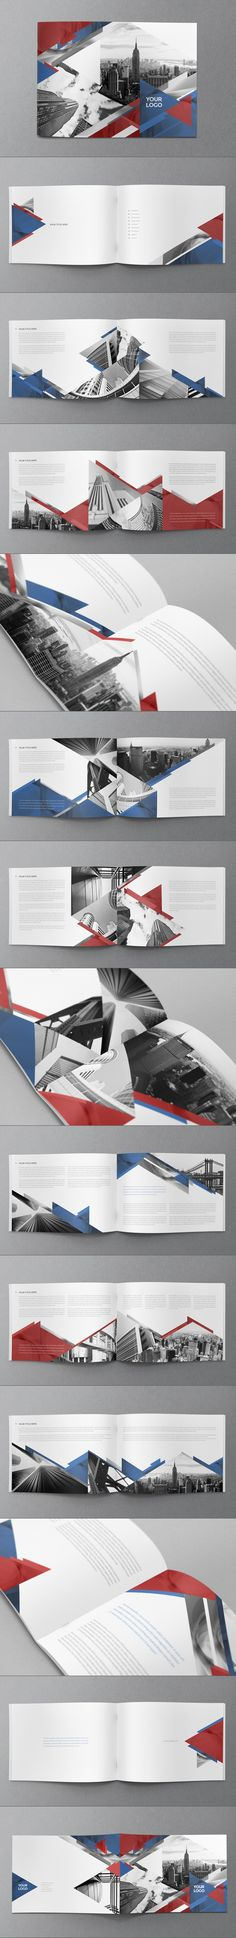 Love this layout and geometric elements. American Brochure by Abra Design, via Behance